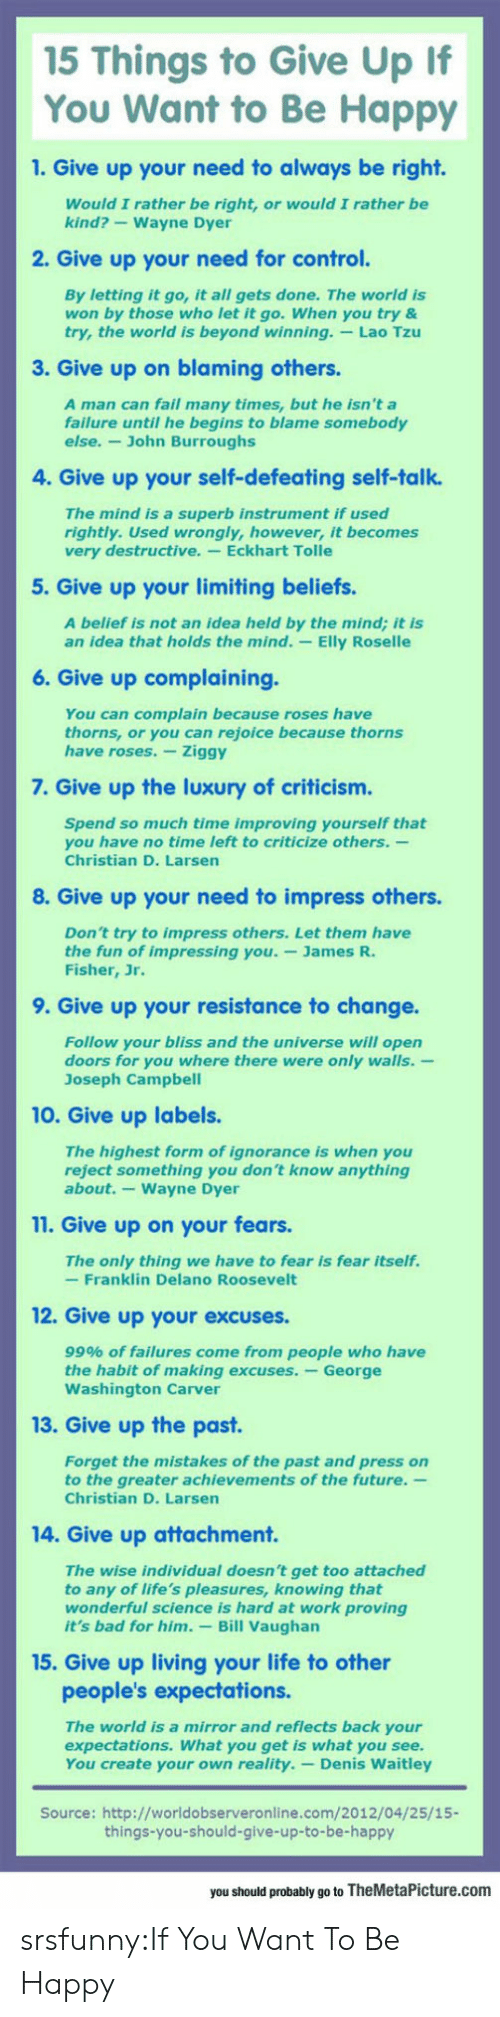 Rightly: 15 Things to Give Up If  You Want to Be Happy  1. Give up your need to always be right.  Would I rather be right, or would I rather be  kind?-Wayne Dyer  2. Give up your need for control.  By letting it go, it all gets done. The world is  won by those who let it go. When you try &  try, the world is beyond winning. Lao Tzu  3. Give up on blaming others  A man can fail many times, but he isn't a  failure until he begins to blame somebody  else.- John Burroughs  4. Give up your self-defeating self-talk.  The mind is a superb instrument if used  rightly. Used wrongly, however, it becomes  very destructive. Eckhart Tolle  5. Give up your limiting beliefs.  A belief is not an idea held by the mind; it is  an idea that holds the mind. -Elly Roselle  6. Give up complaining.  You can complain because roses have  thorns, or you can rejoice because thorns  have roses. Ziggy  7. Give up the luxury of criticism.  Spend so much time improving yourself that  you have no time left to criticize others.-  Christian D. Larsen  8. Give up your need to impress others.  Don't try to impress others. Let them have  the fun of impressing you.-James R.  Fisher, Jr.  9. Give up your resistance to change.  Follow your bliss and the universe will open  doors for you where there were only walls.-  Joseph Campbel  10. Give up labels.  The highest form of ignorance is when you  reject something you don't know anything  about.-Wayne Dyer  11. Give up on your fears.  The only thing we have to fear is fear itself.  -Franklin Delano Roosevelt  12. Give up your excuses.  99% of failures come from people who have  the habit of making excuses. -George  Washington Carver  13. Give up the past  Forget the mistakes of the past and press on  to the greater achievements of the future.  Christian D. Larsen  14. Give up attachment.  The wise individual doesn't get too attached  to any of life's pleasures, knowing that  wonderful science is hard at work proving  it's bad for him. Bill Vaughan  15. Give up living your life to other  people's expectations.  The world is a mirror and reflects back your  expectations. What you get is what you see.  You create your own reality.- Denis Waitley  Source: http://worldobserveronline.com/2012/04/25/15-  things-you-should-give-up-to-be-happy  you should probably go to TheMetaPicture.com srsfunny:If You Want To Be Happy